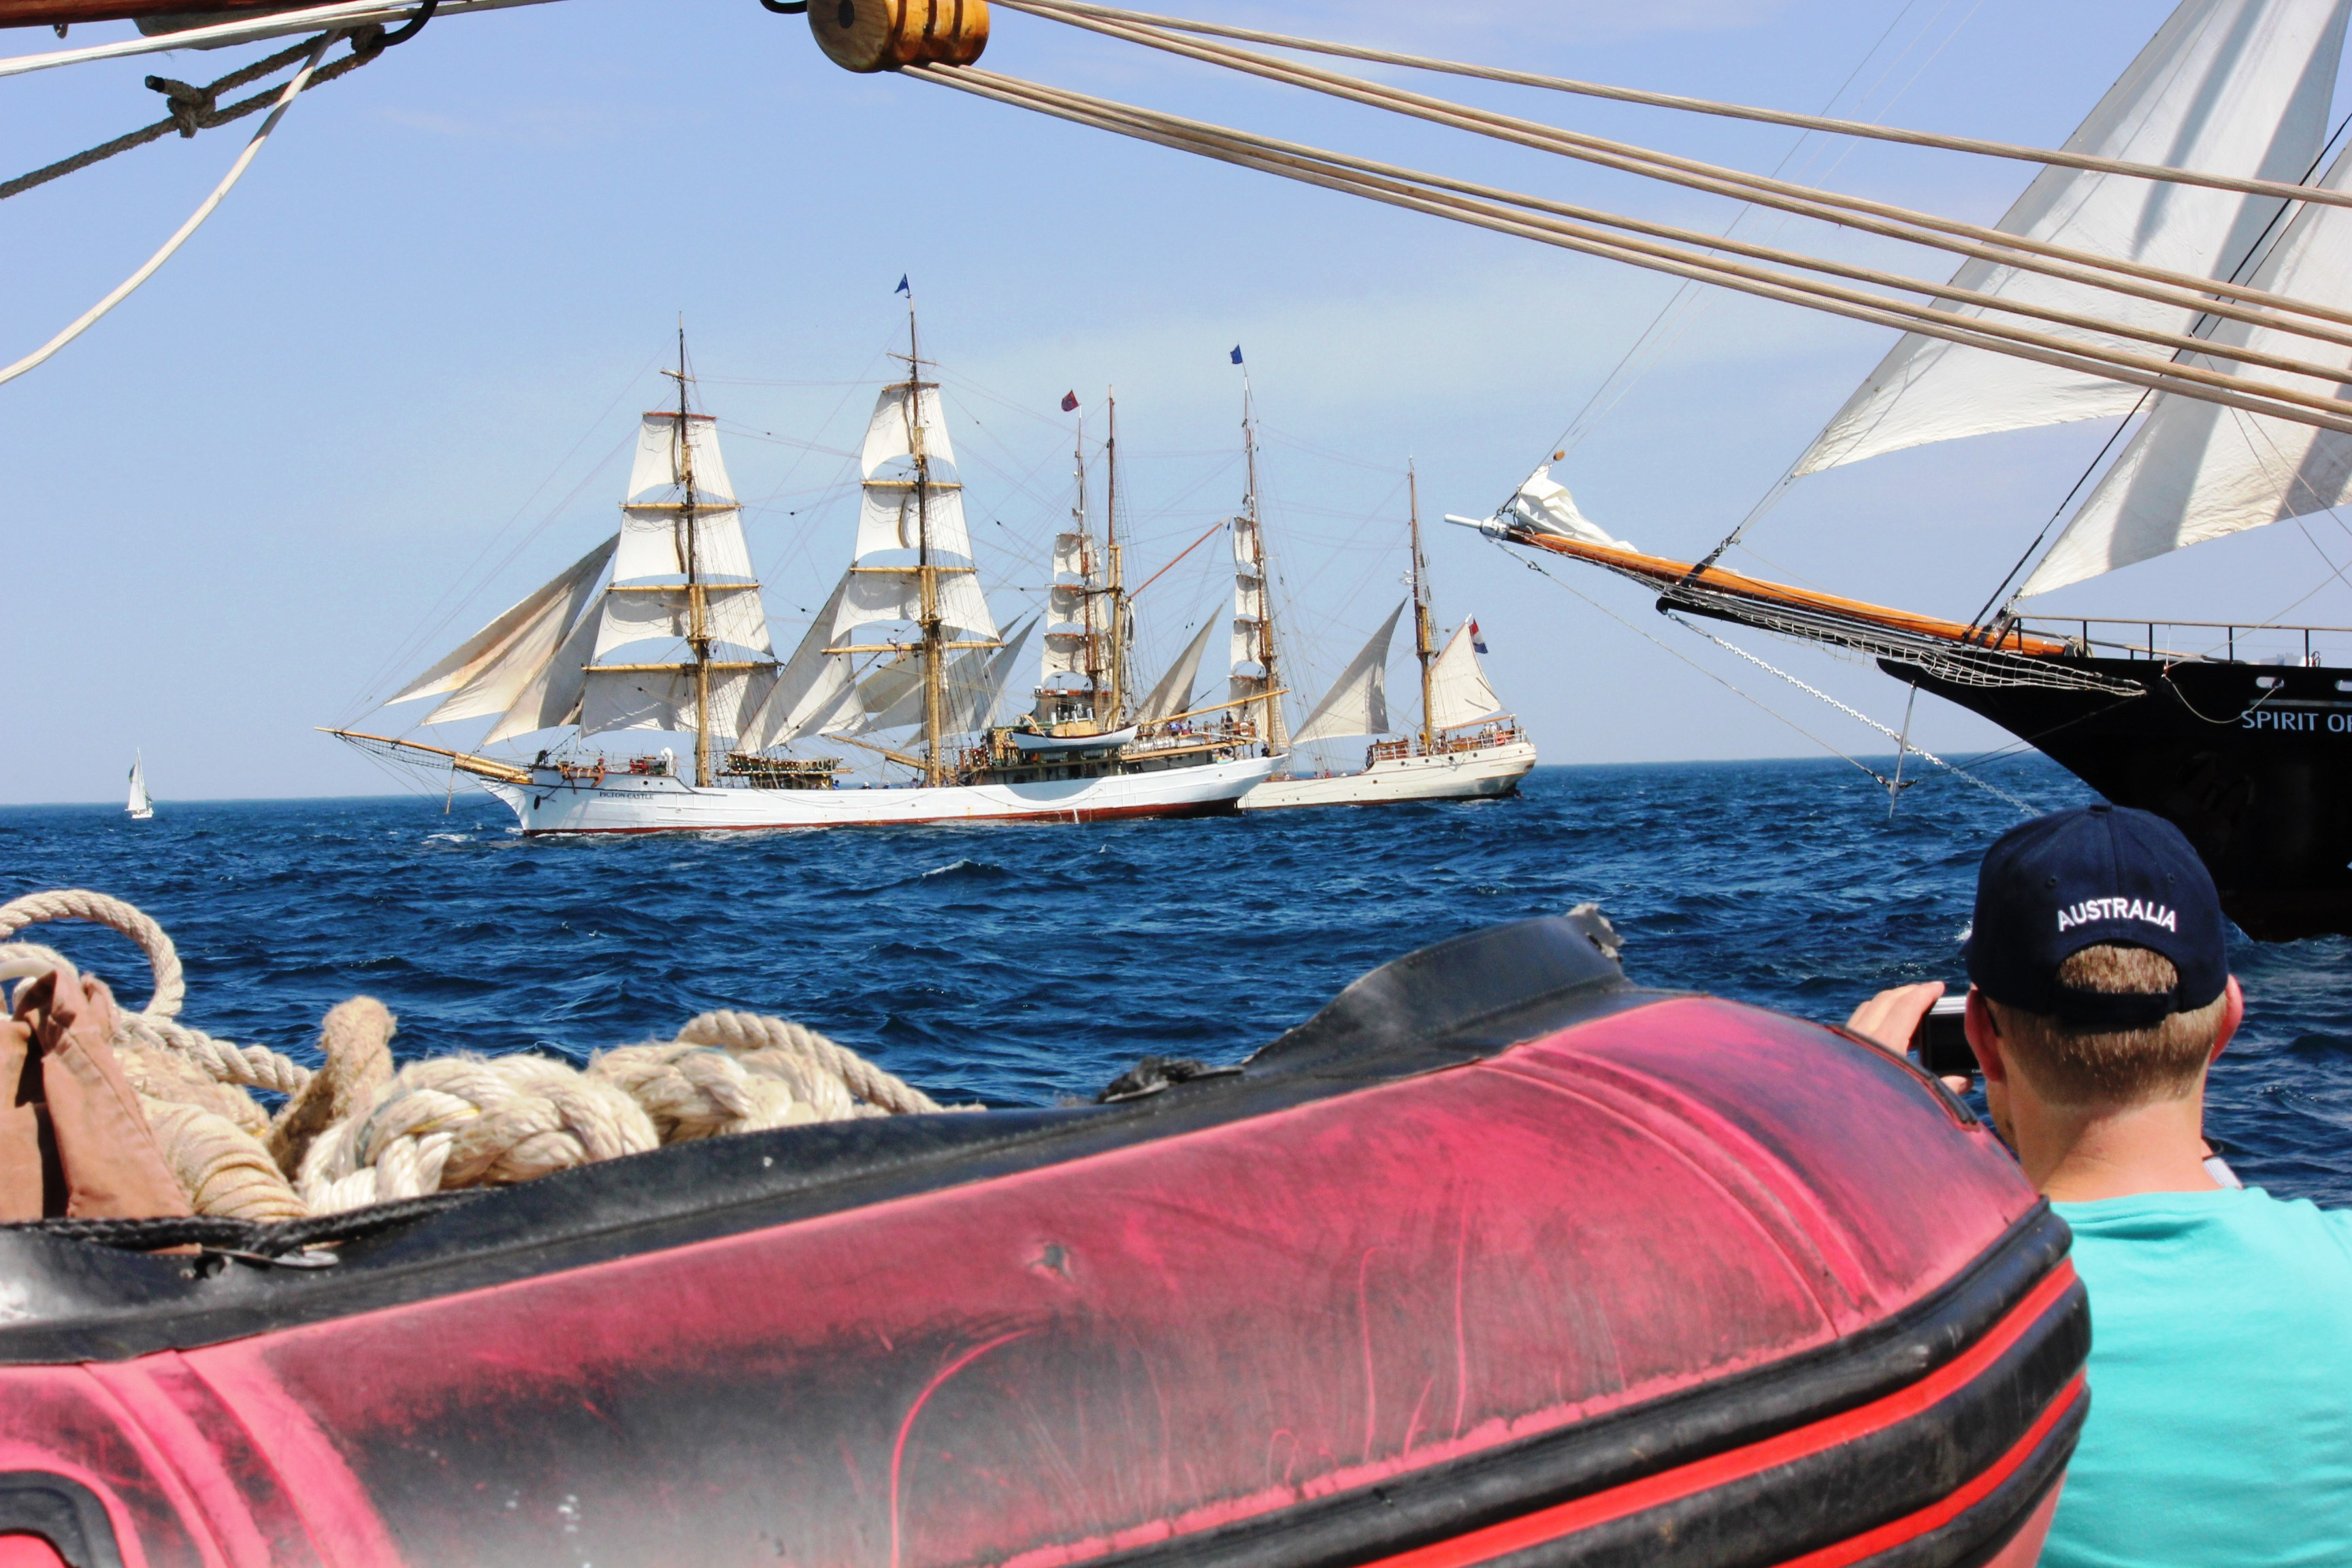 sydney to auckland race start off the tall ships regatta